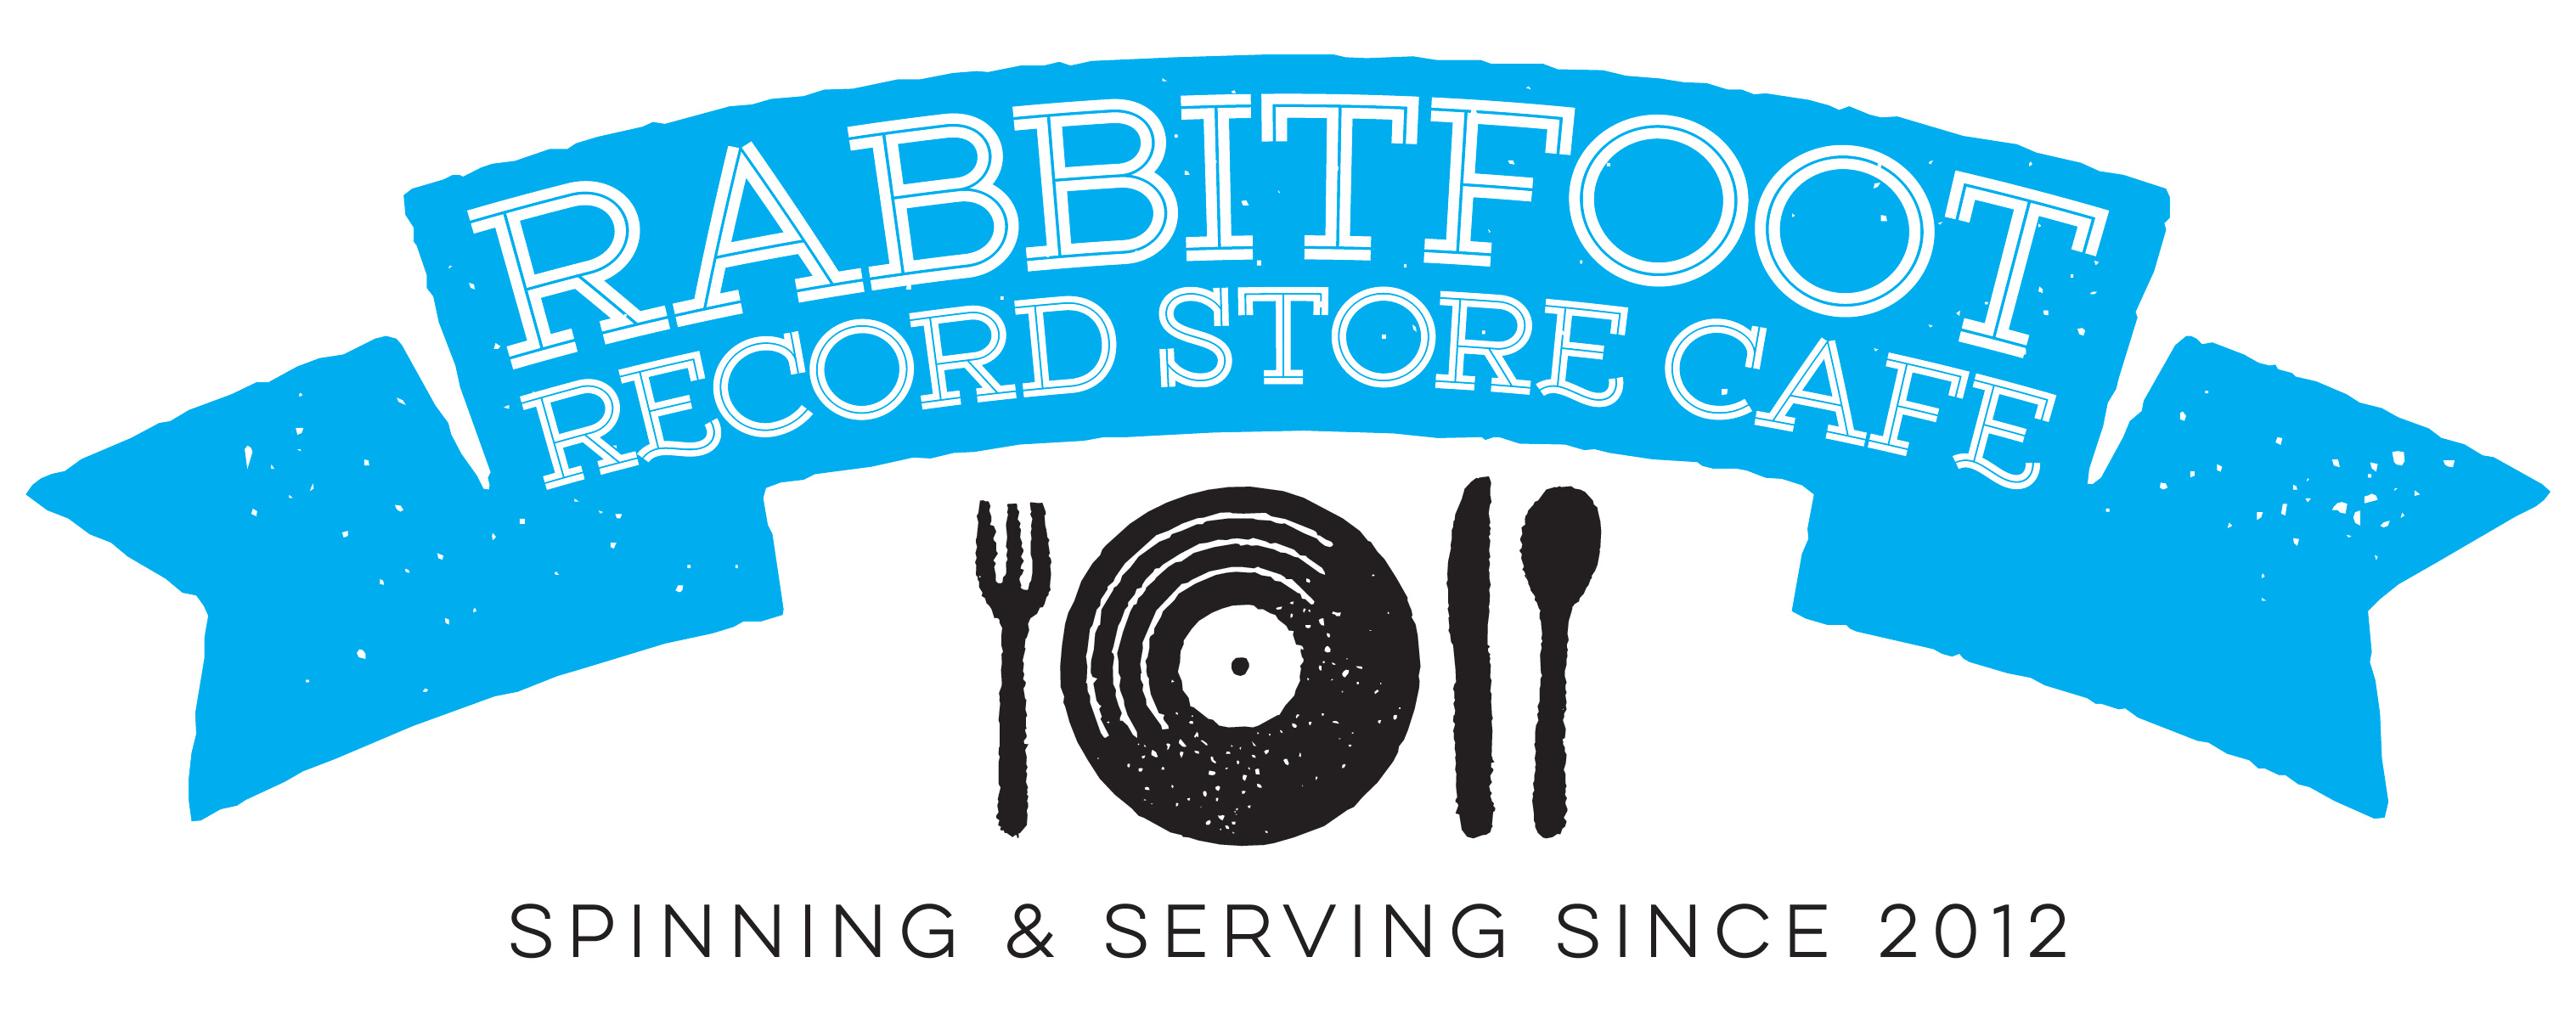 Rabbitfoot Record Store Café